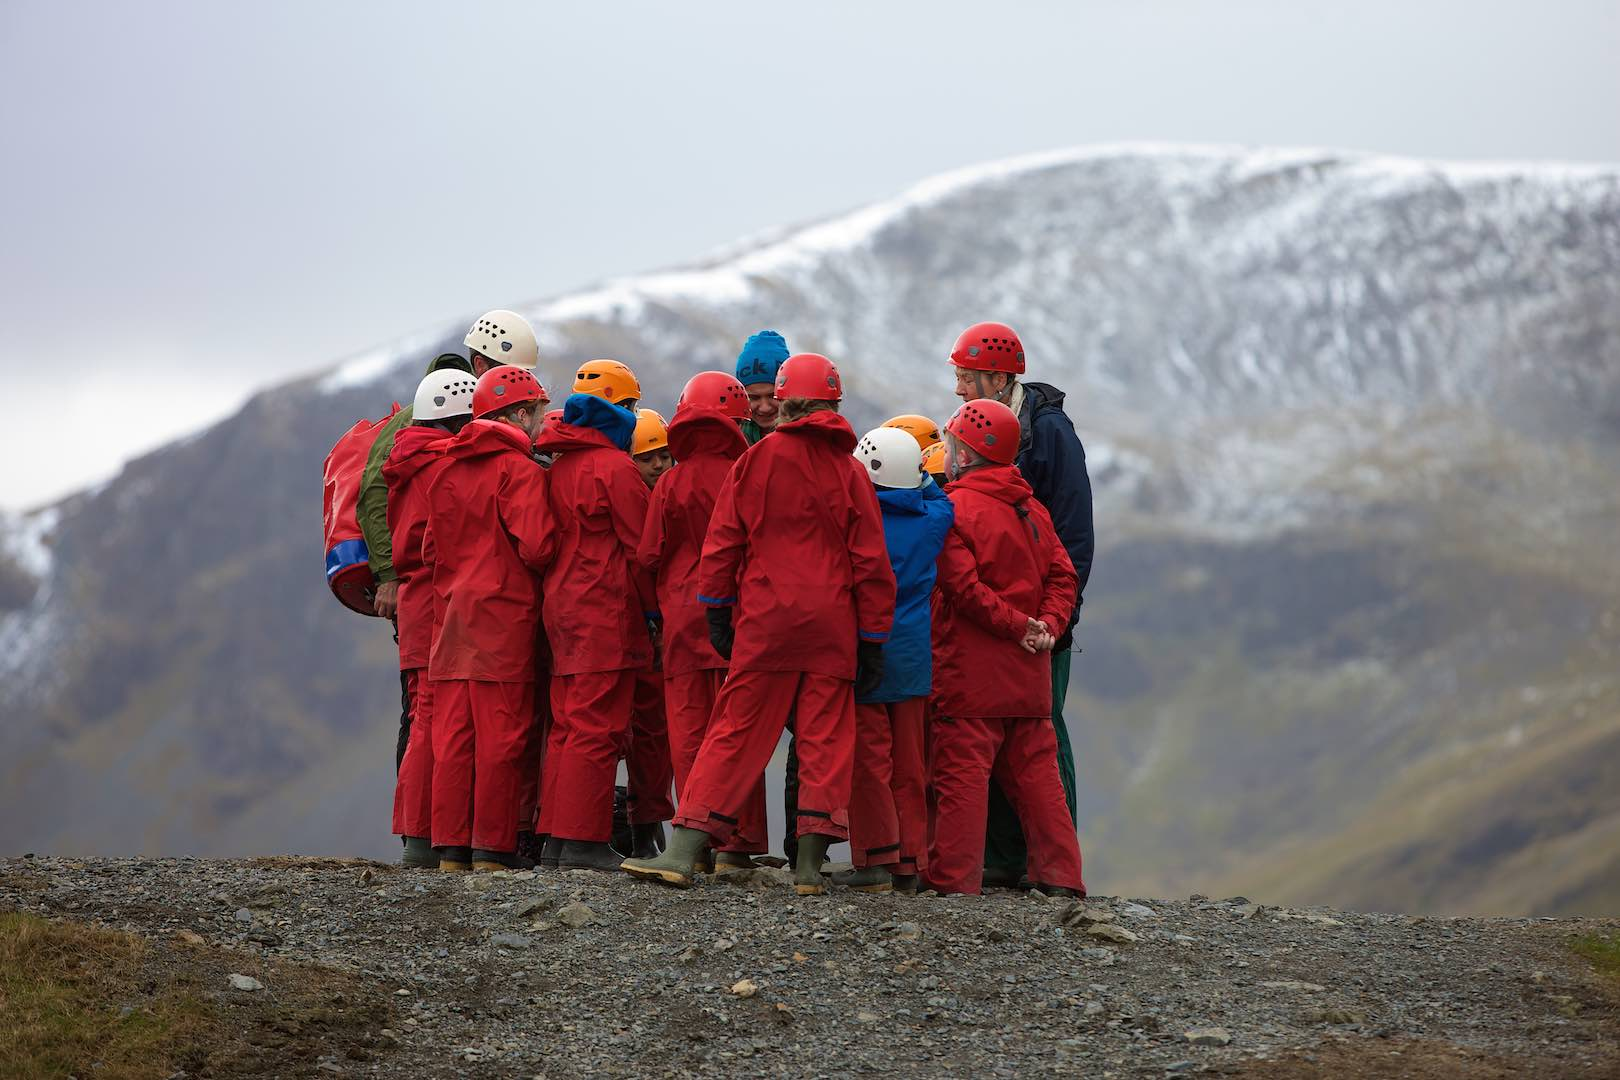 Primary pupils huddled together among the mountains learning about geology